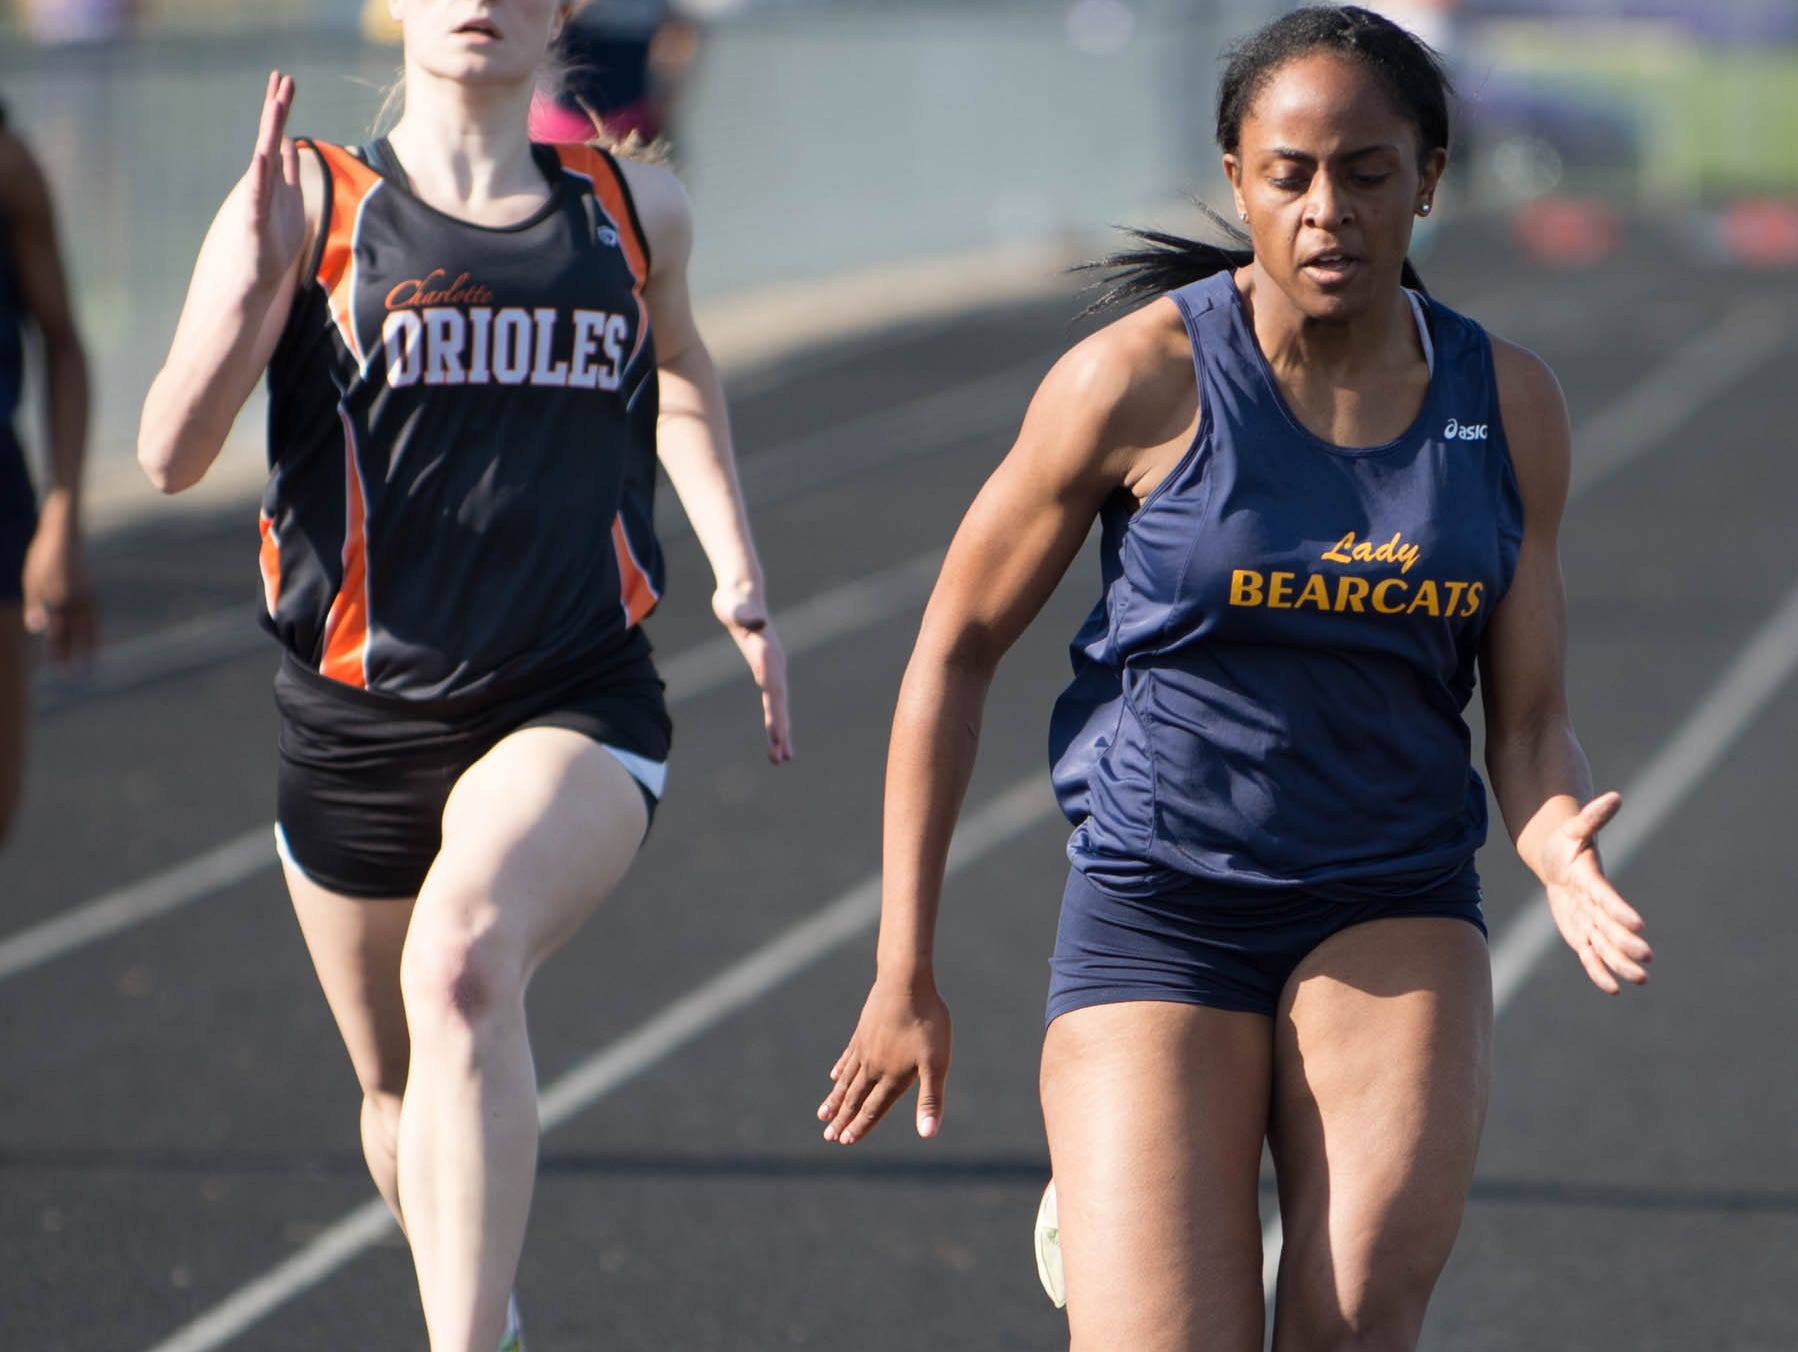 Battle Creek Central's Ayrianna Smith has the area's top time in the 200 dash this season at 26.58 seconds.